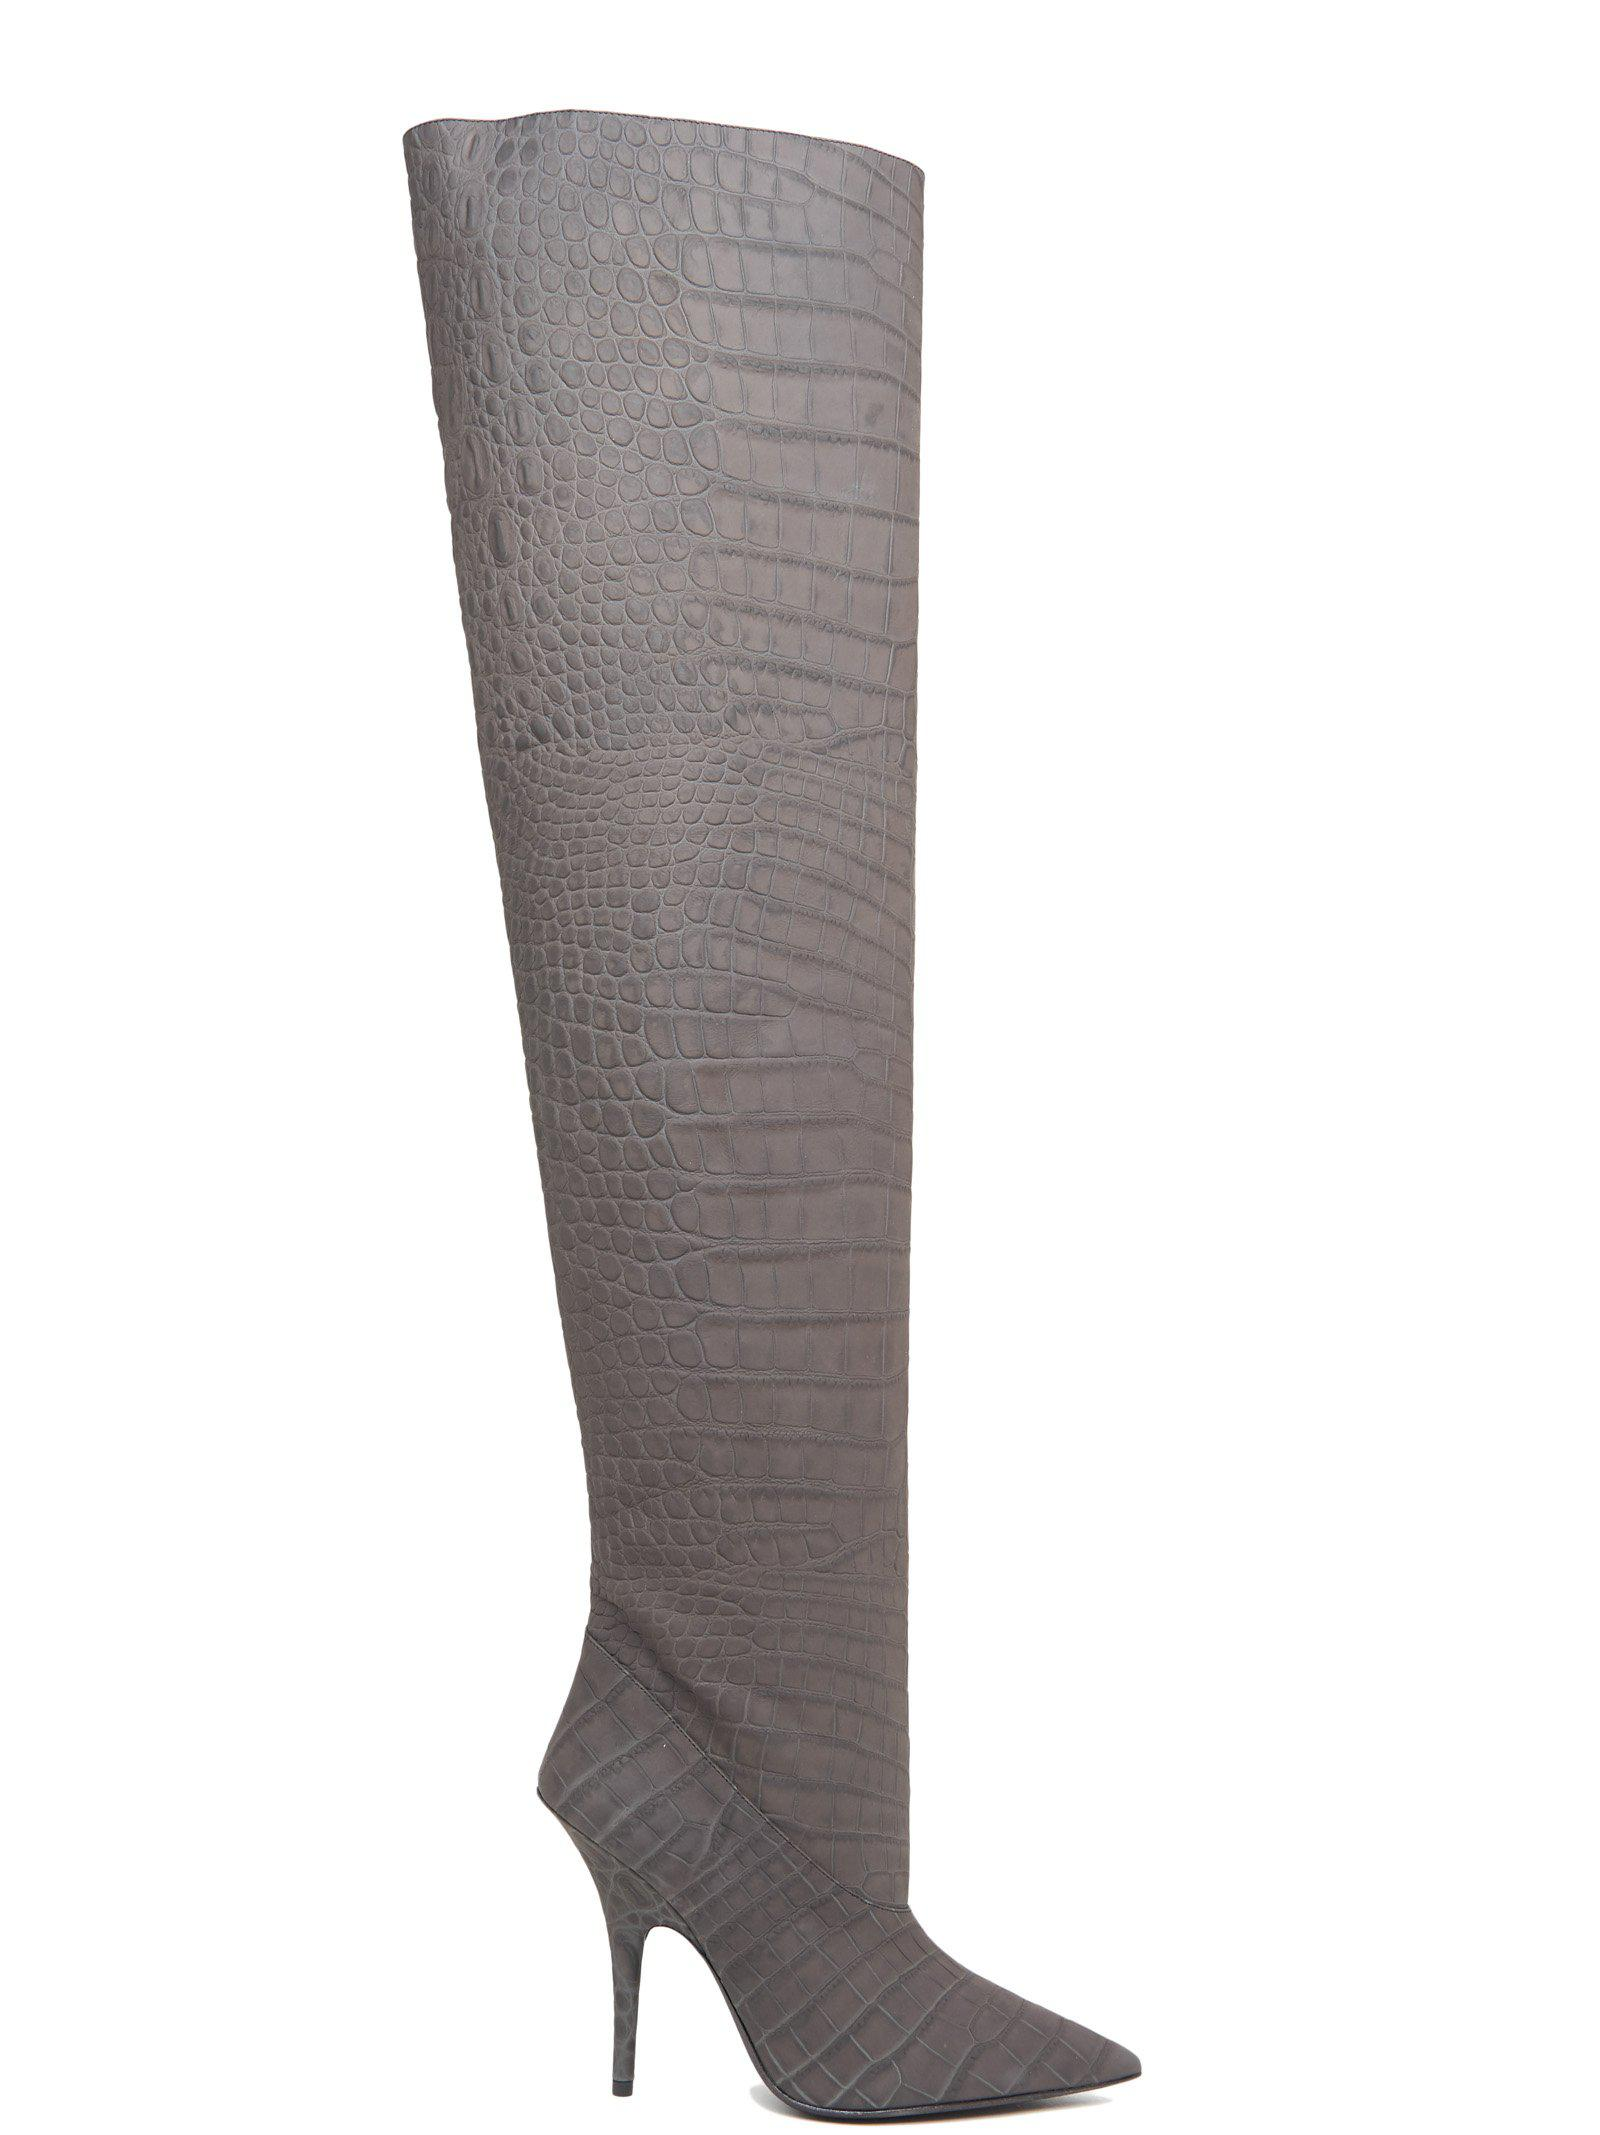 2e821c243f3 Yeezy Croc Effect Over The Knee Boots in Gray - Save 20% - Lyst